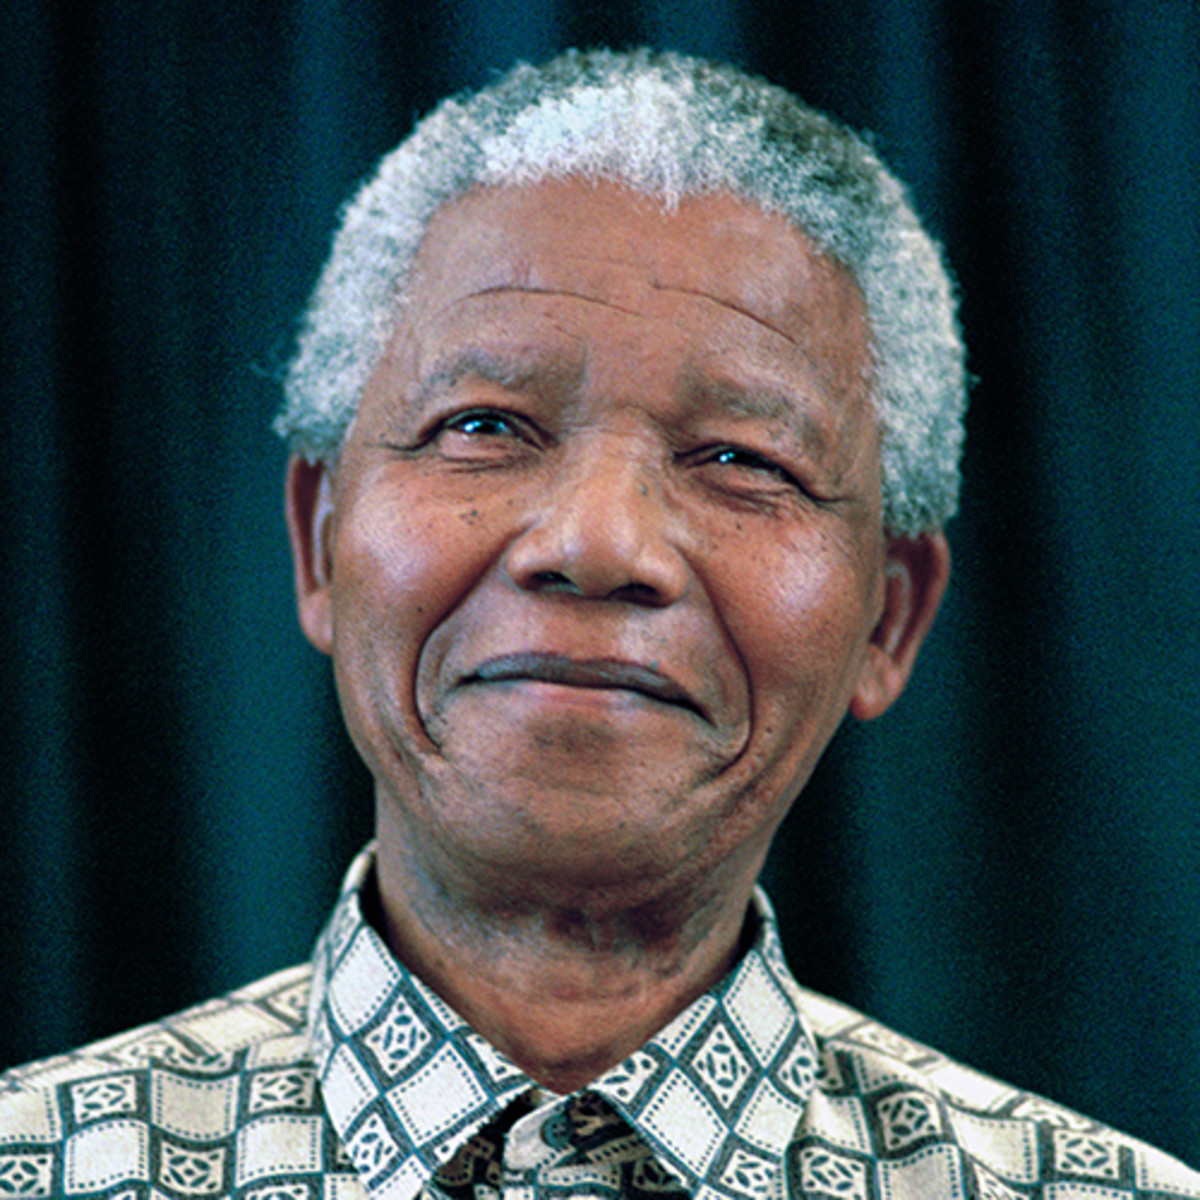 August 6: Nelson Mandela got arrested and Voting Rights Act got signed